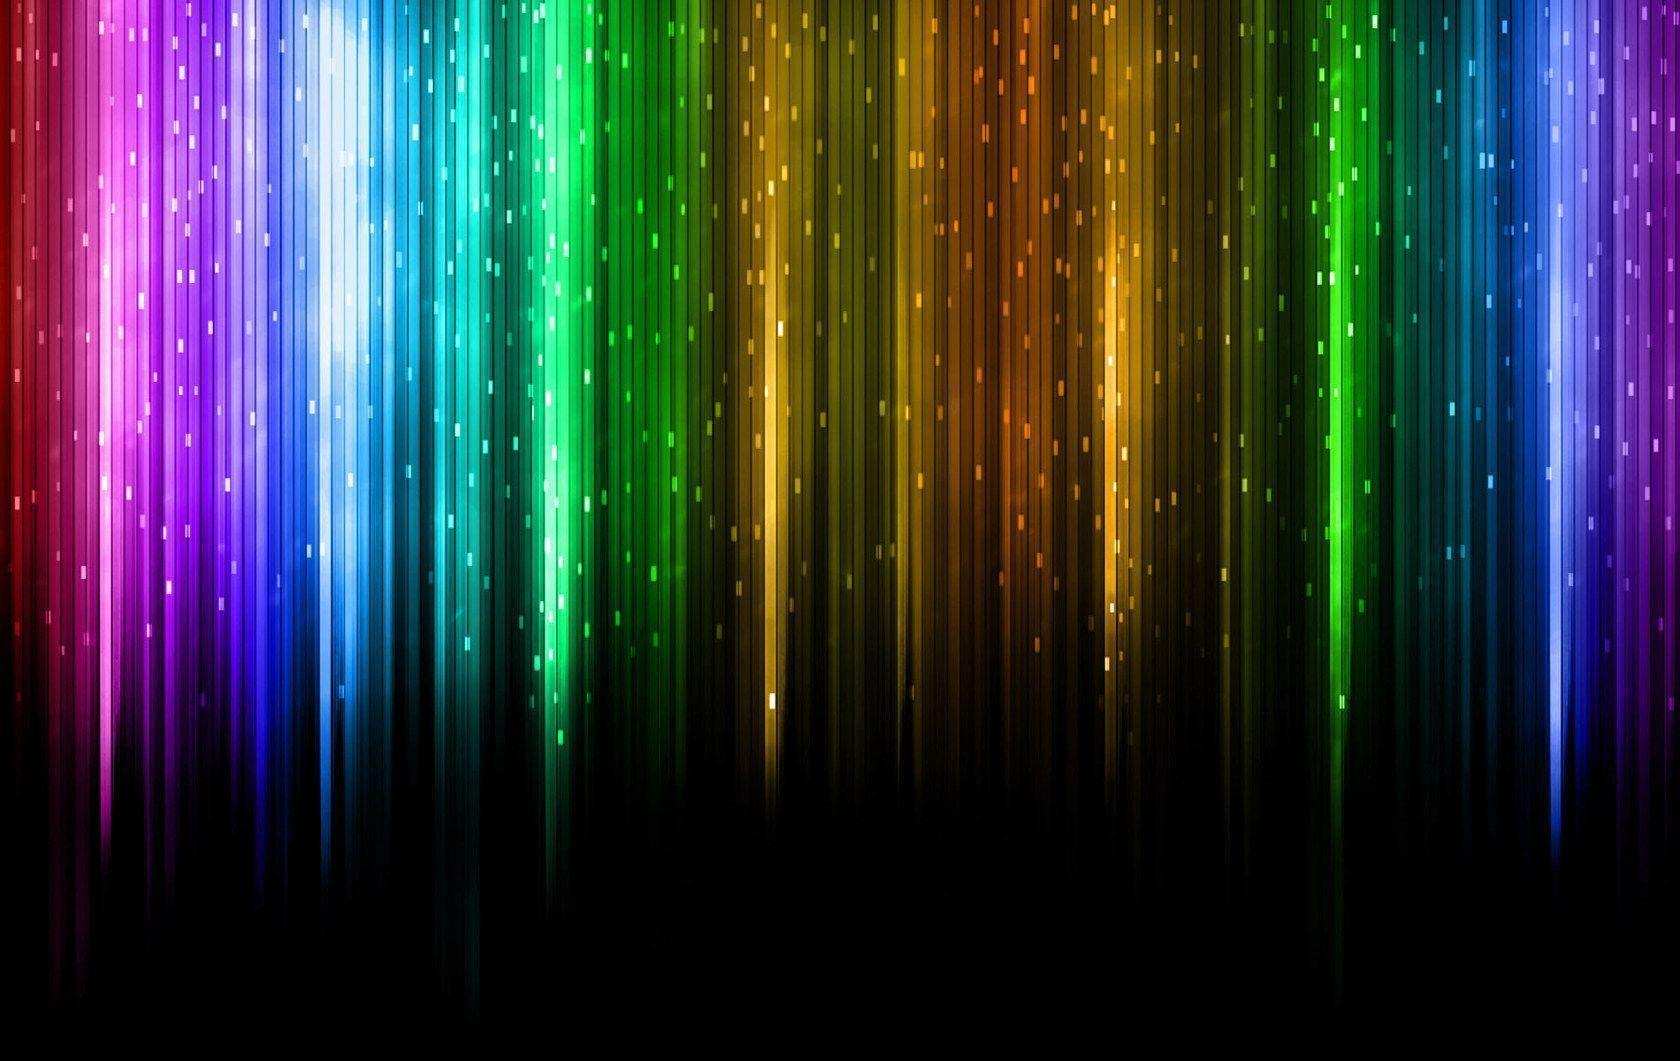 Colorful Abstract Backgrounds Pictures Wallpapers